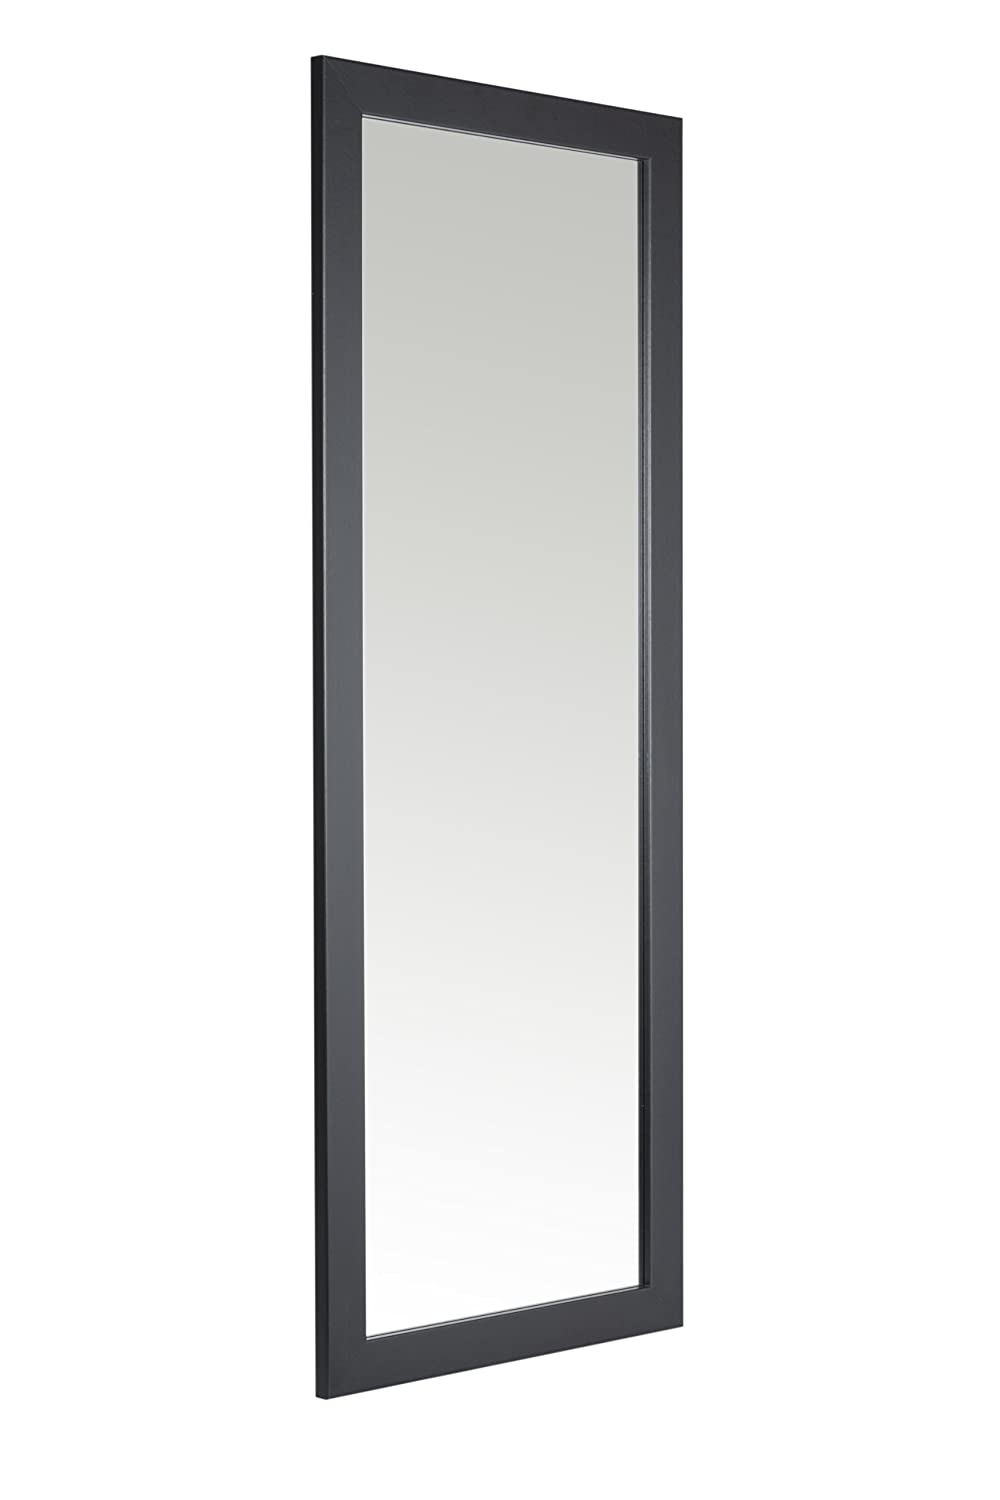 38 x 99cm Black Framed Mirror with Wall Hanging Fixings